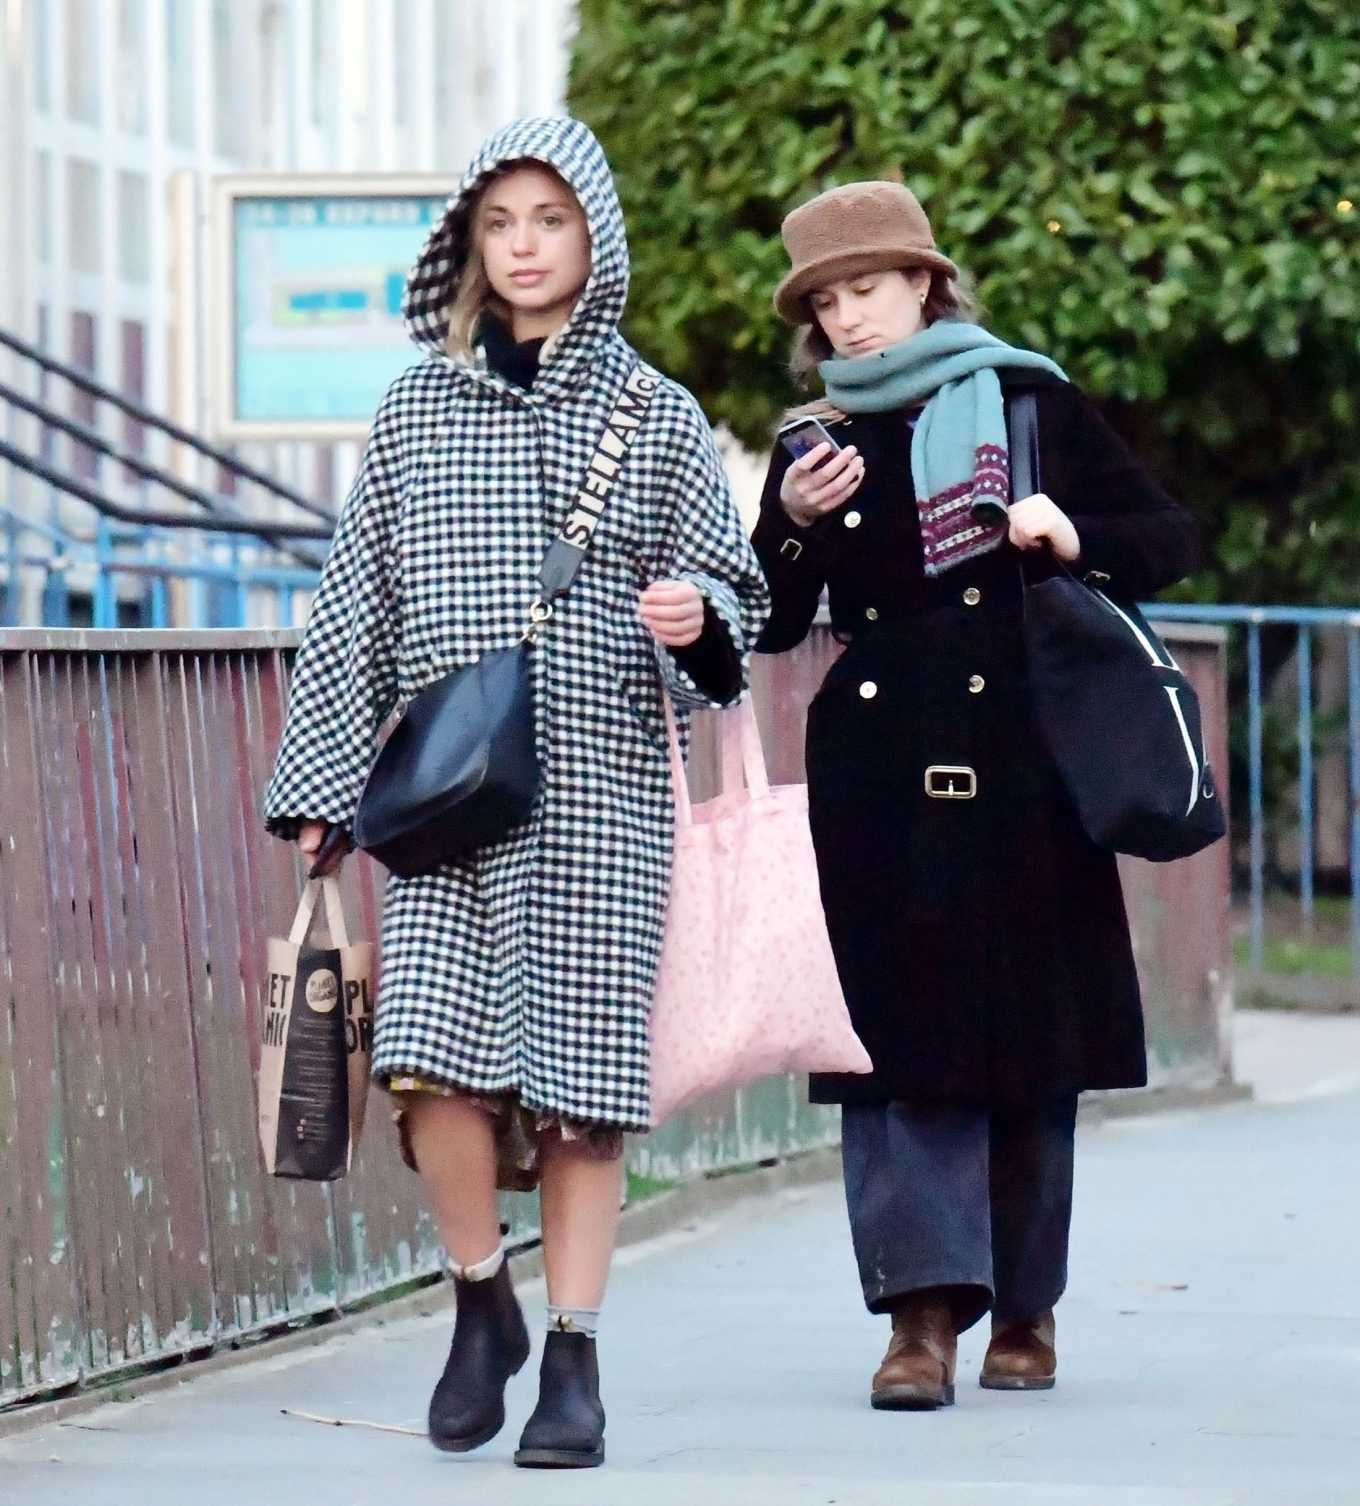 Amelia Windsor 2020 : Amelia Windsor – Looks stylis while out in the trendy area of Notting Hill-32